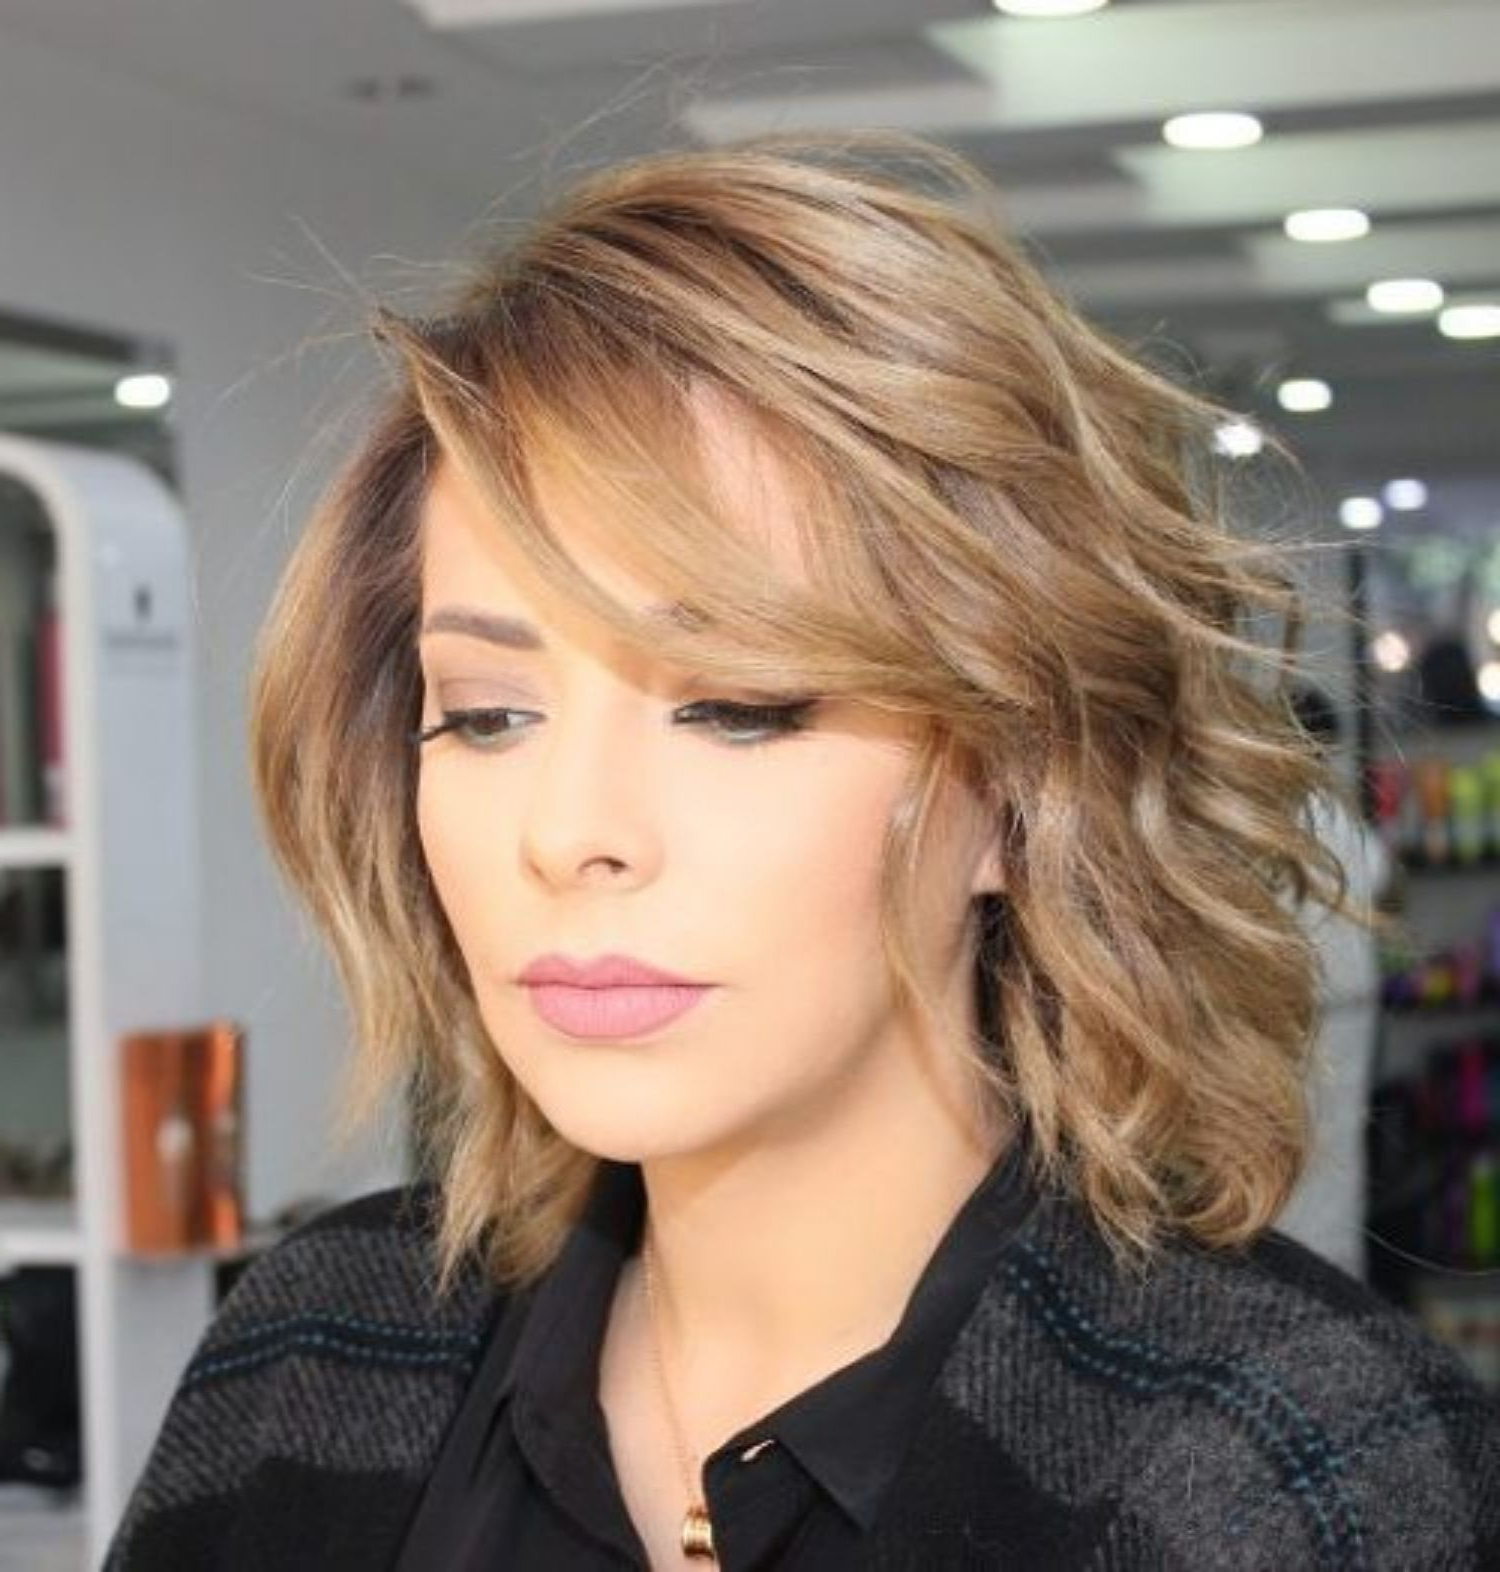 2018 Wispy Medium Haircuts With 70 Brightest Medium Layered Haircuts To Light You Up In (View 3 of 20)